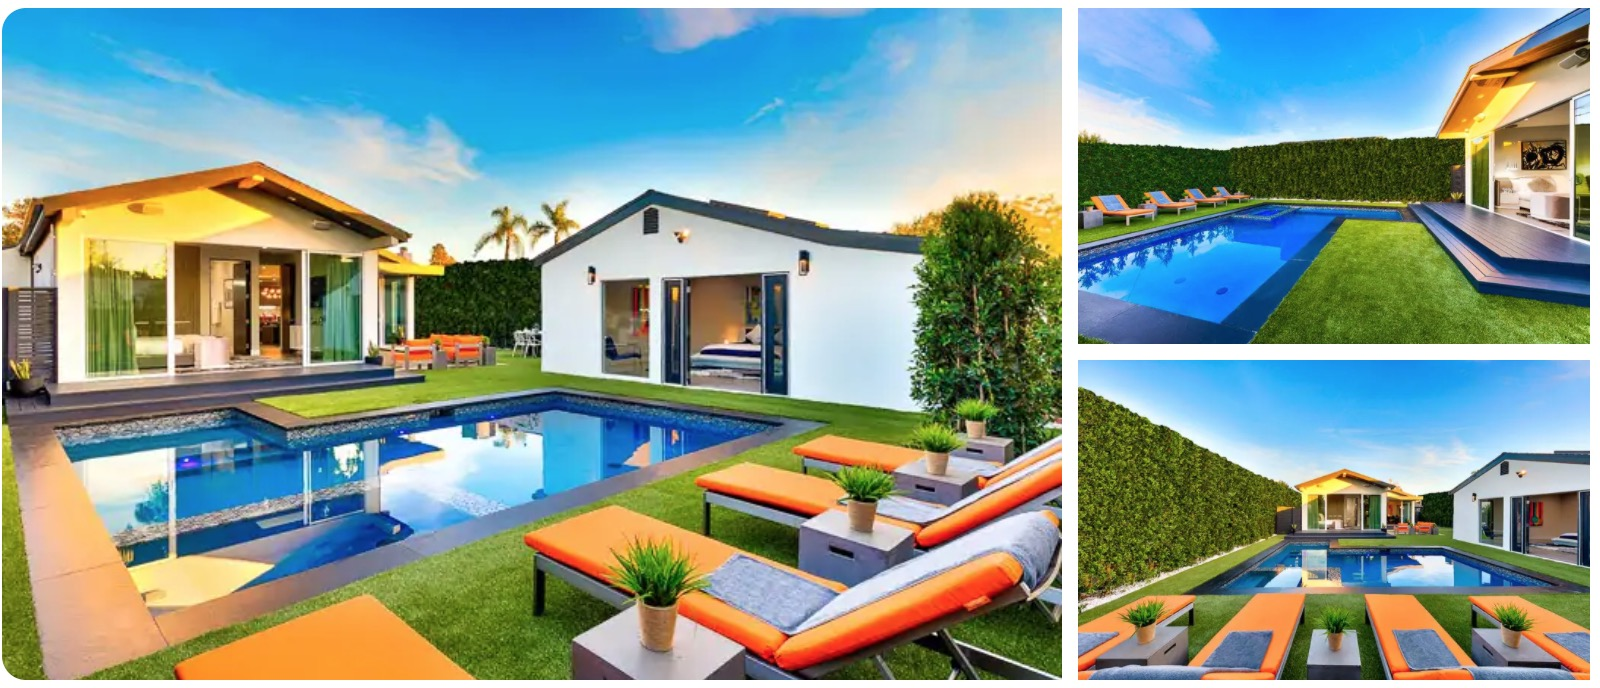 Sunset Villa with Pool In Beverly Hills